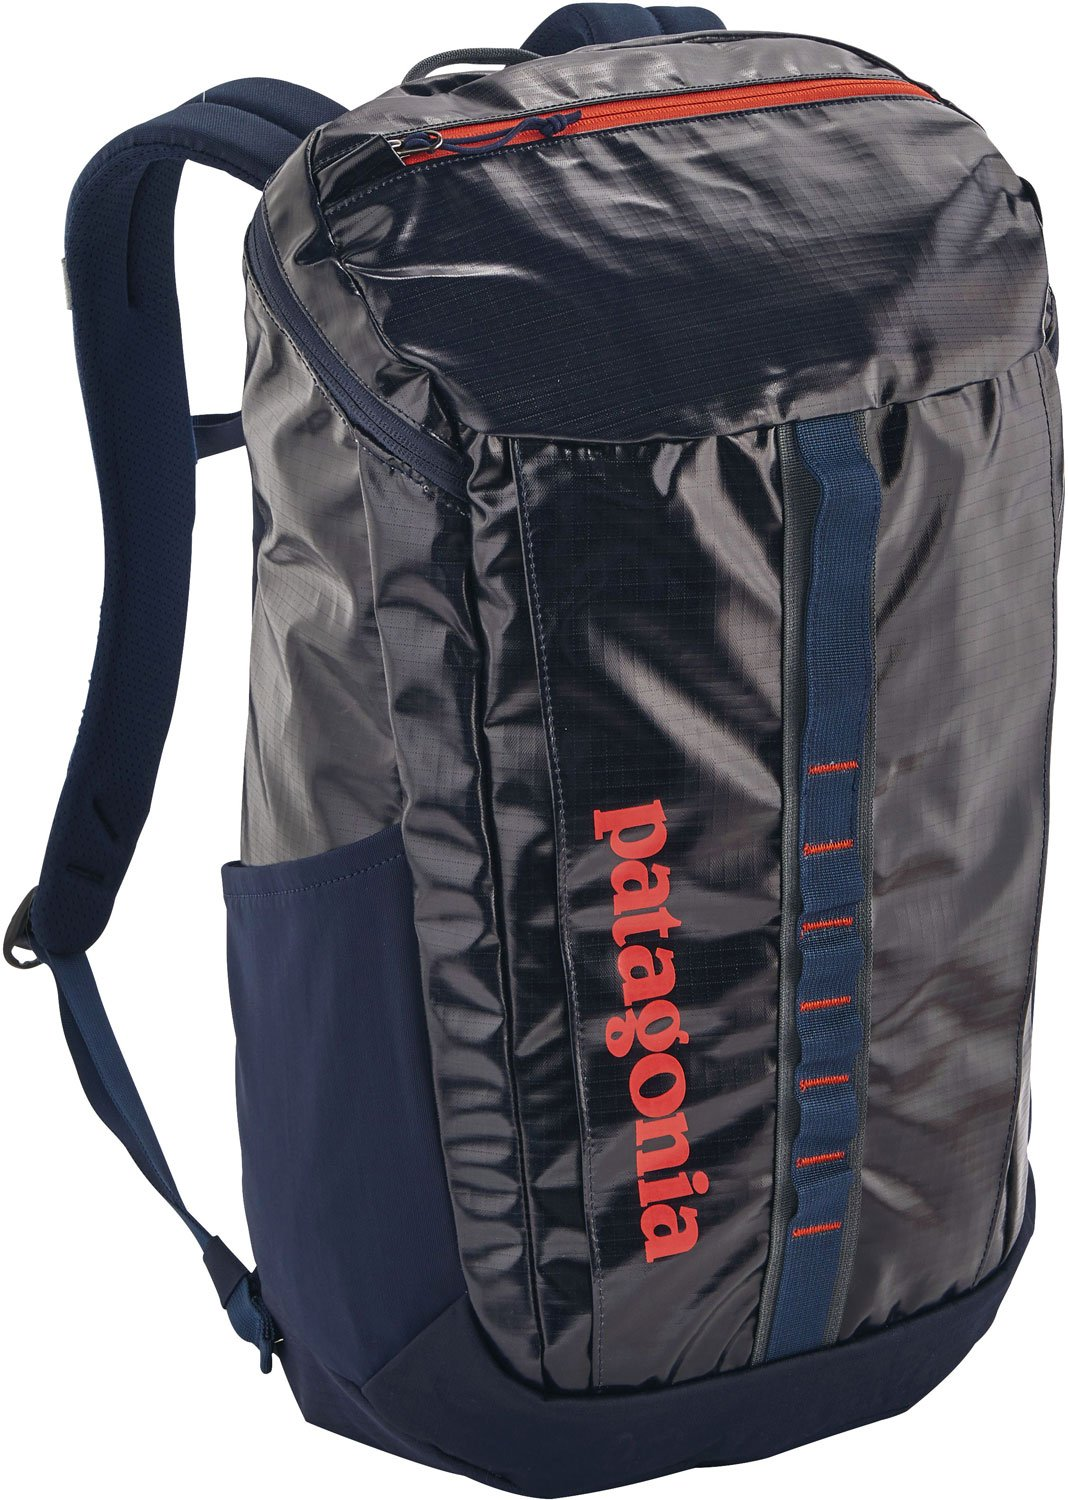 Patagonia Black Hole Backpack 25L Navy Blue w/ Paintbrush Red by Patagonia